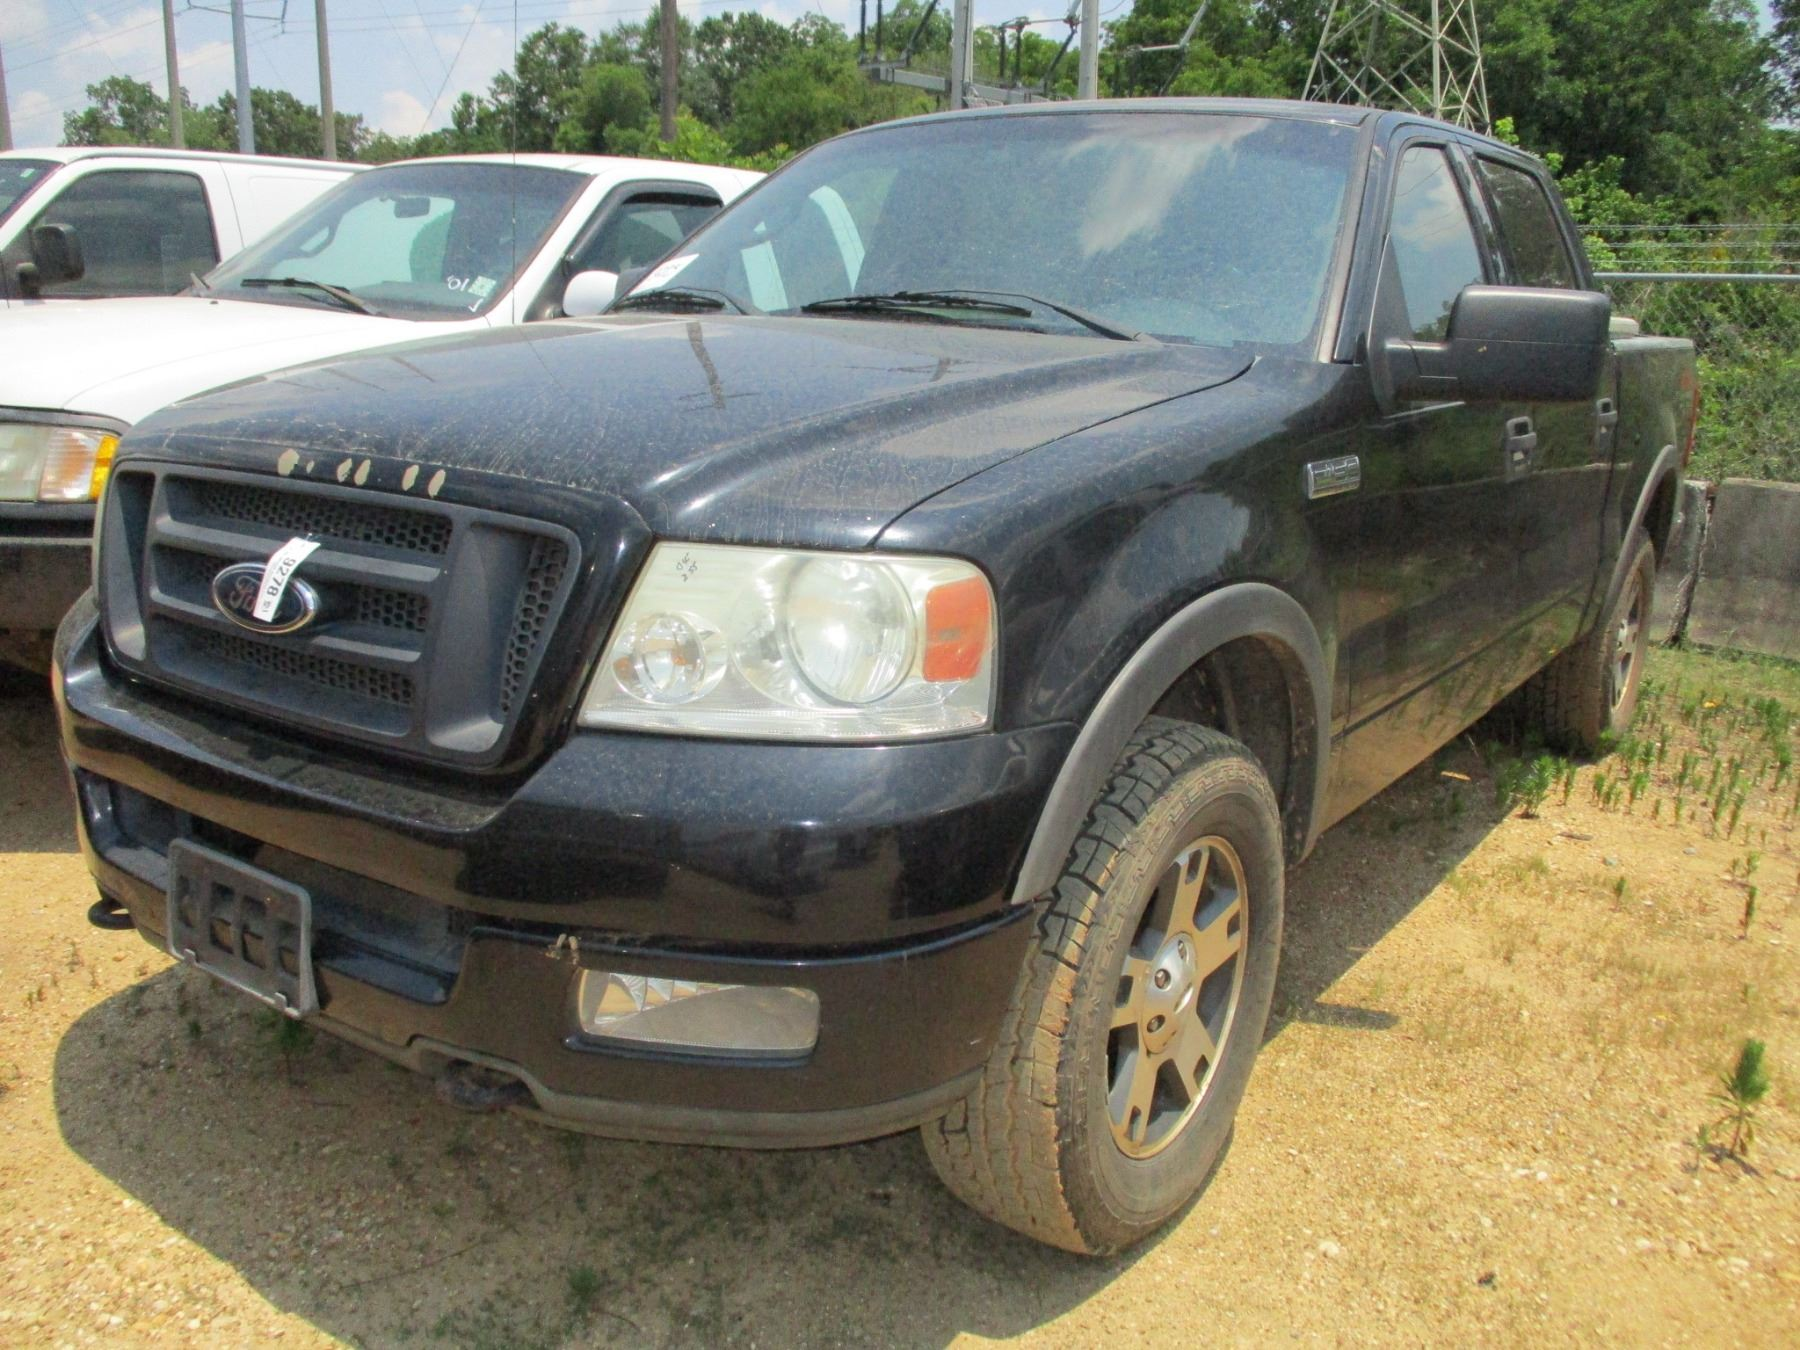 small resolution of image 1 2004 ford f150 fx4 pick up vin sn 1ftpw14594kc30932